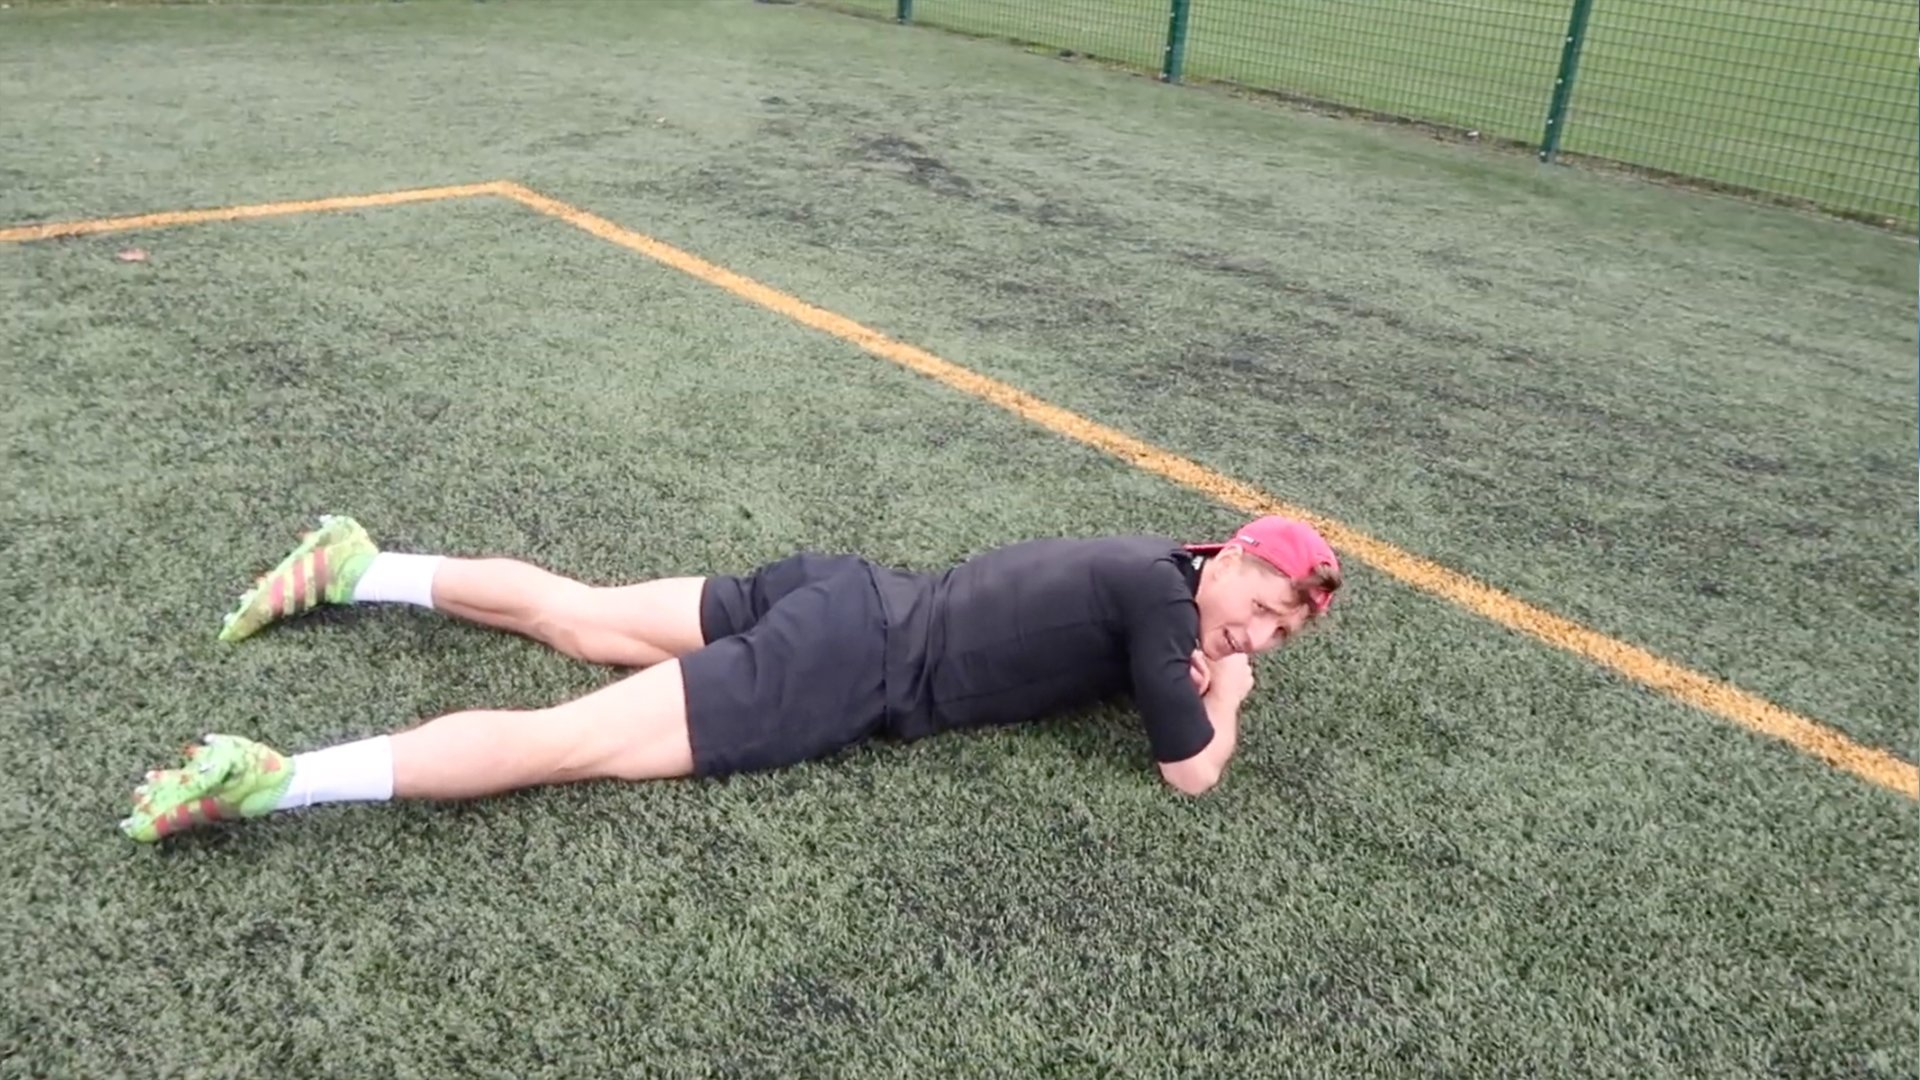 Fitness influencer foolishly tries rugby endurance training